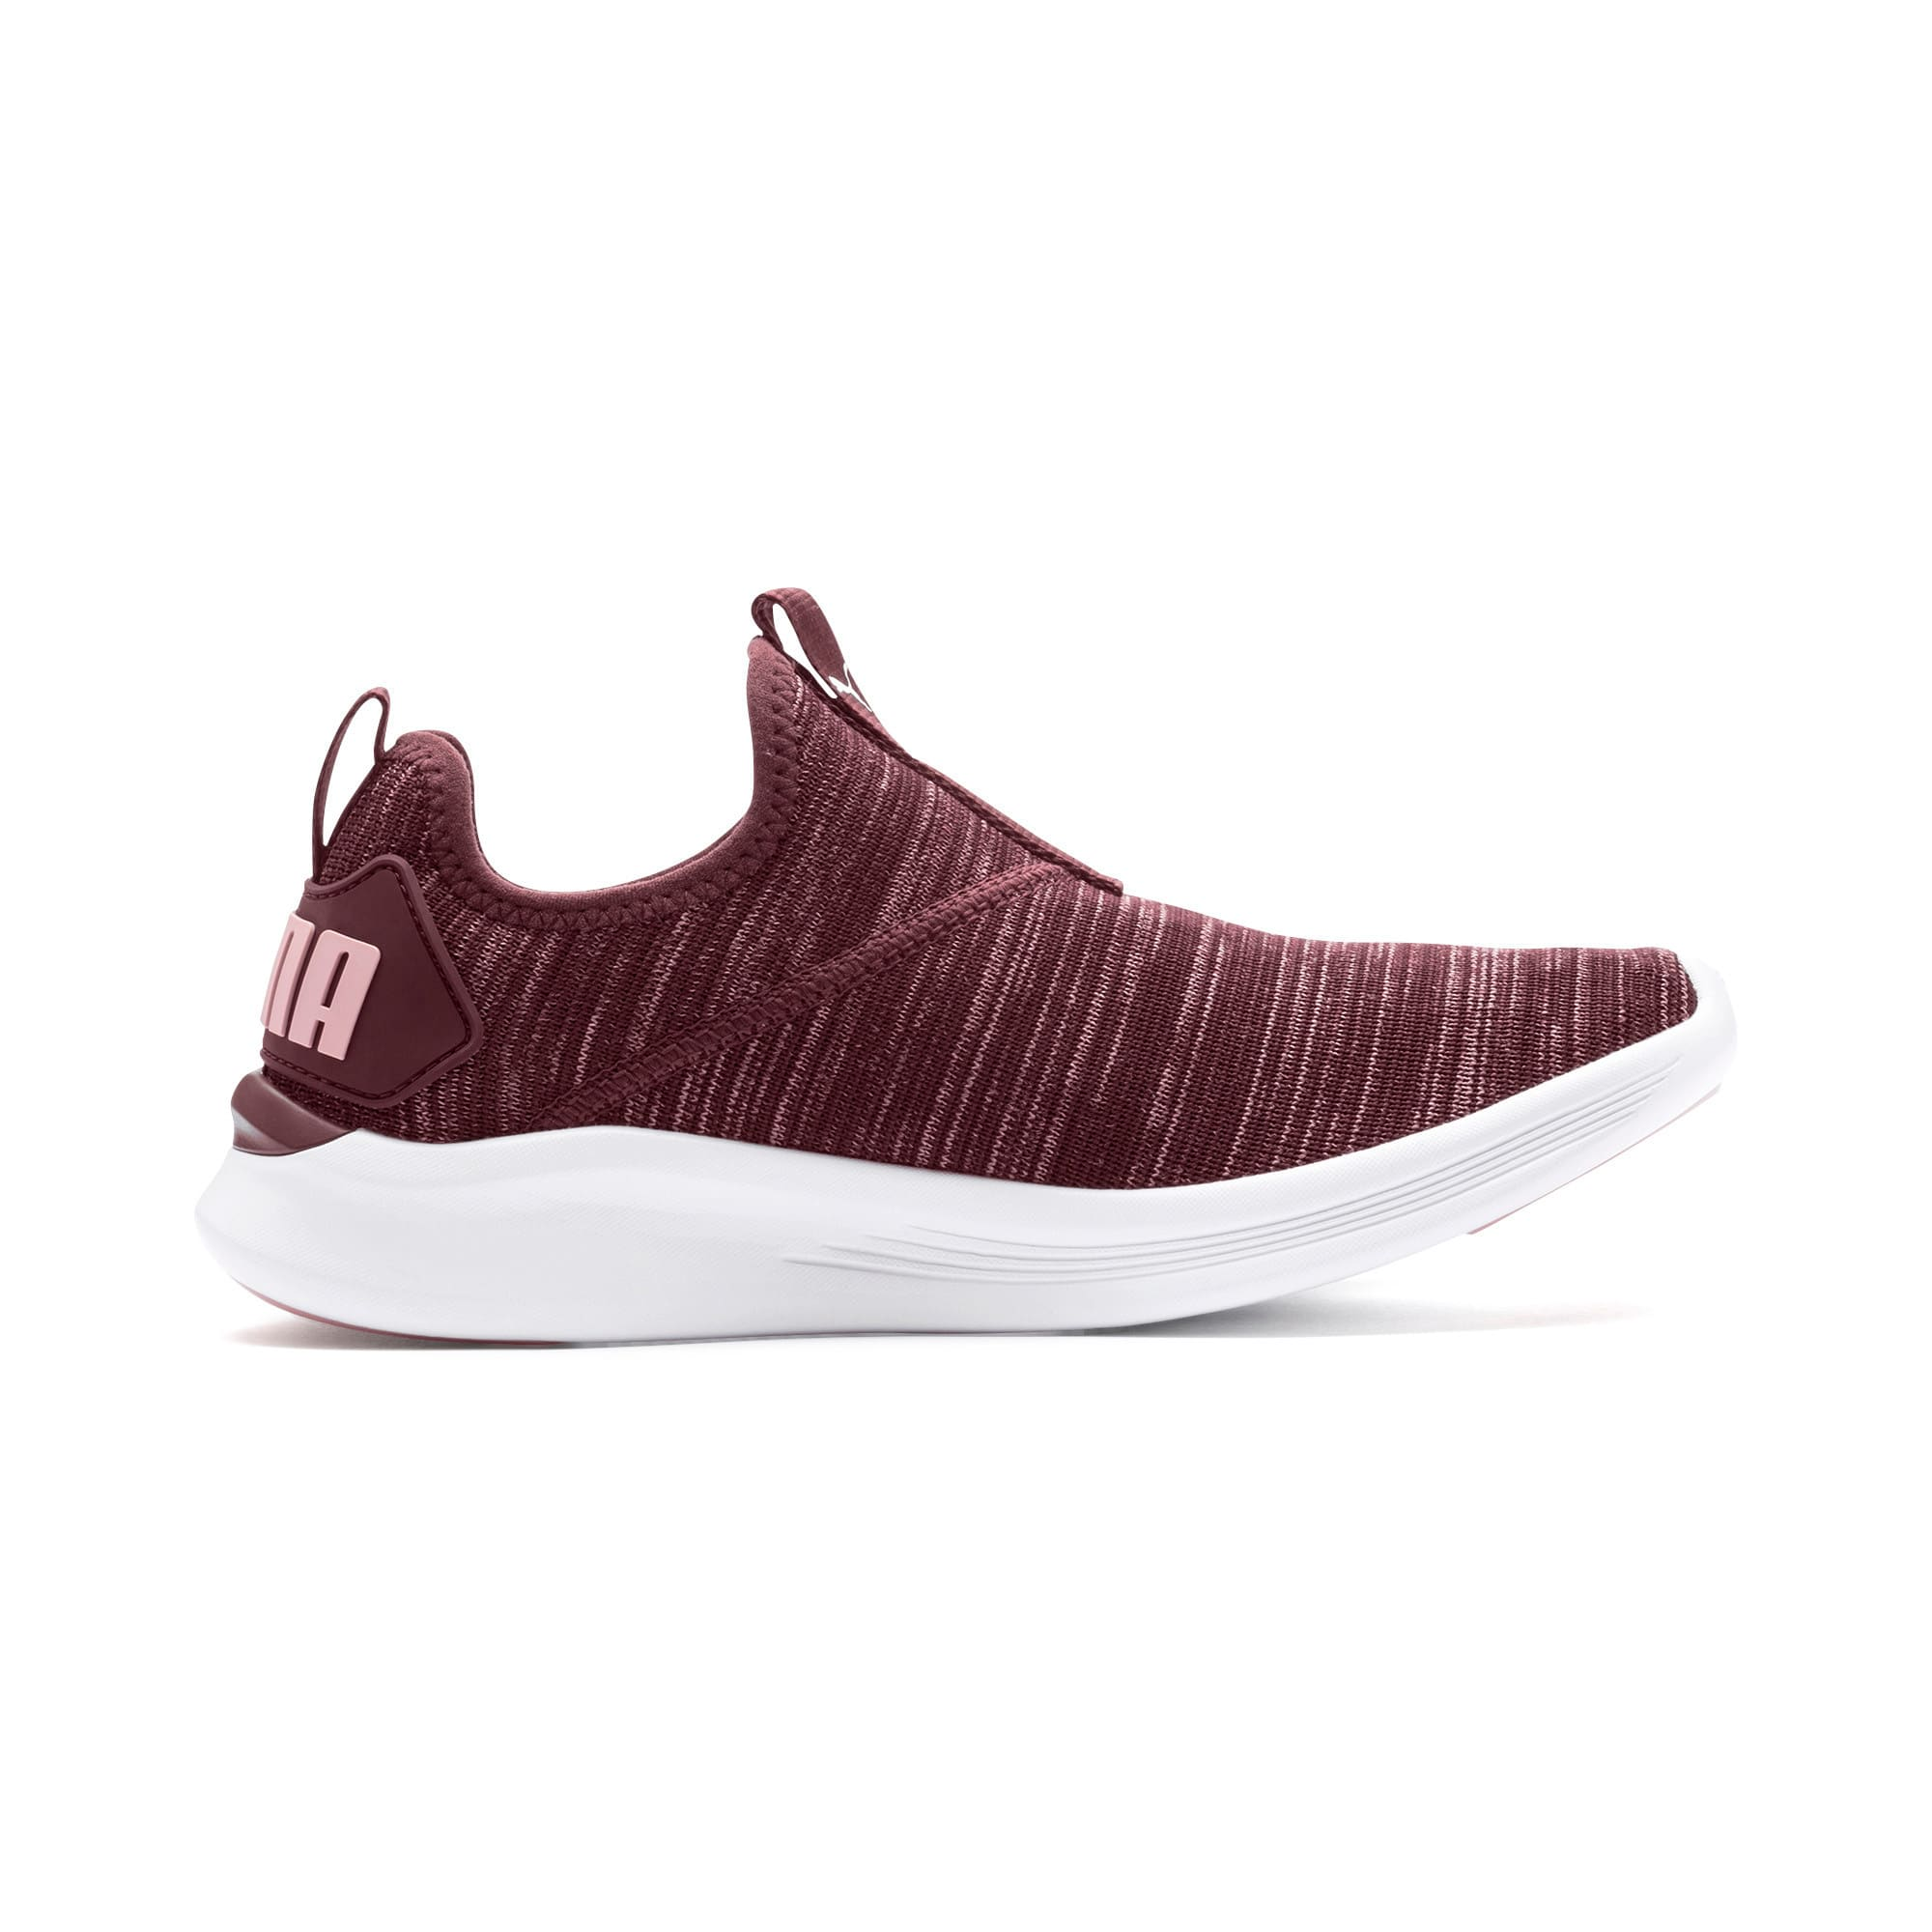 Thumbnail 6 of IGNITE Flash Summer Slip Women's Training Shoes, Vineyard Wine-Bridal Rose, medium